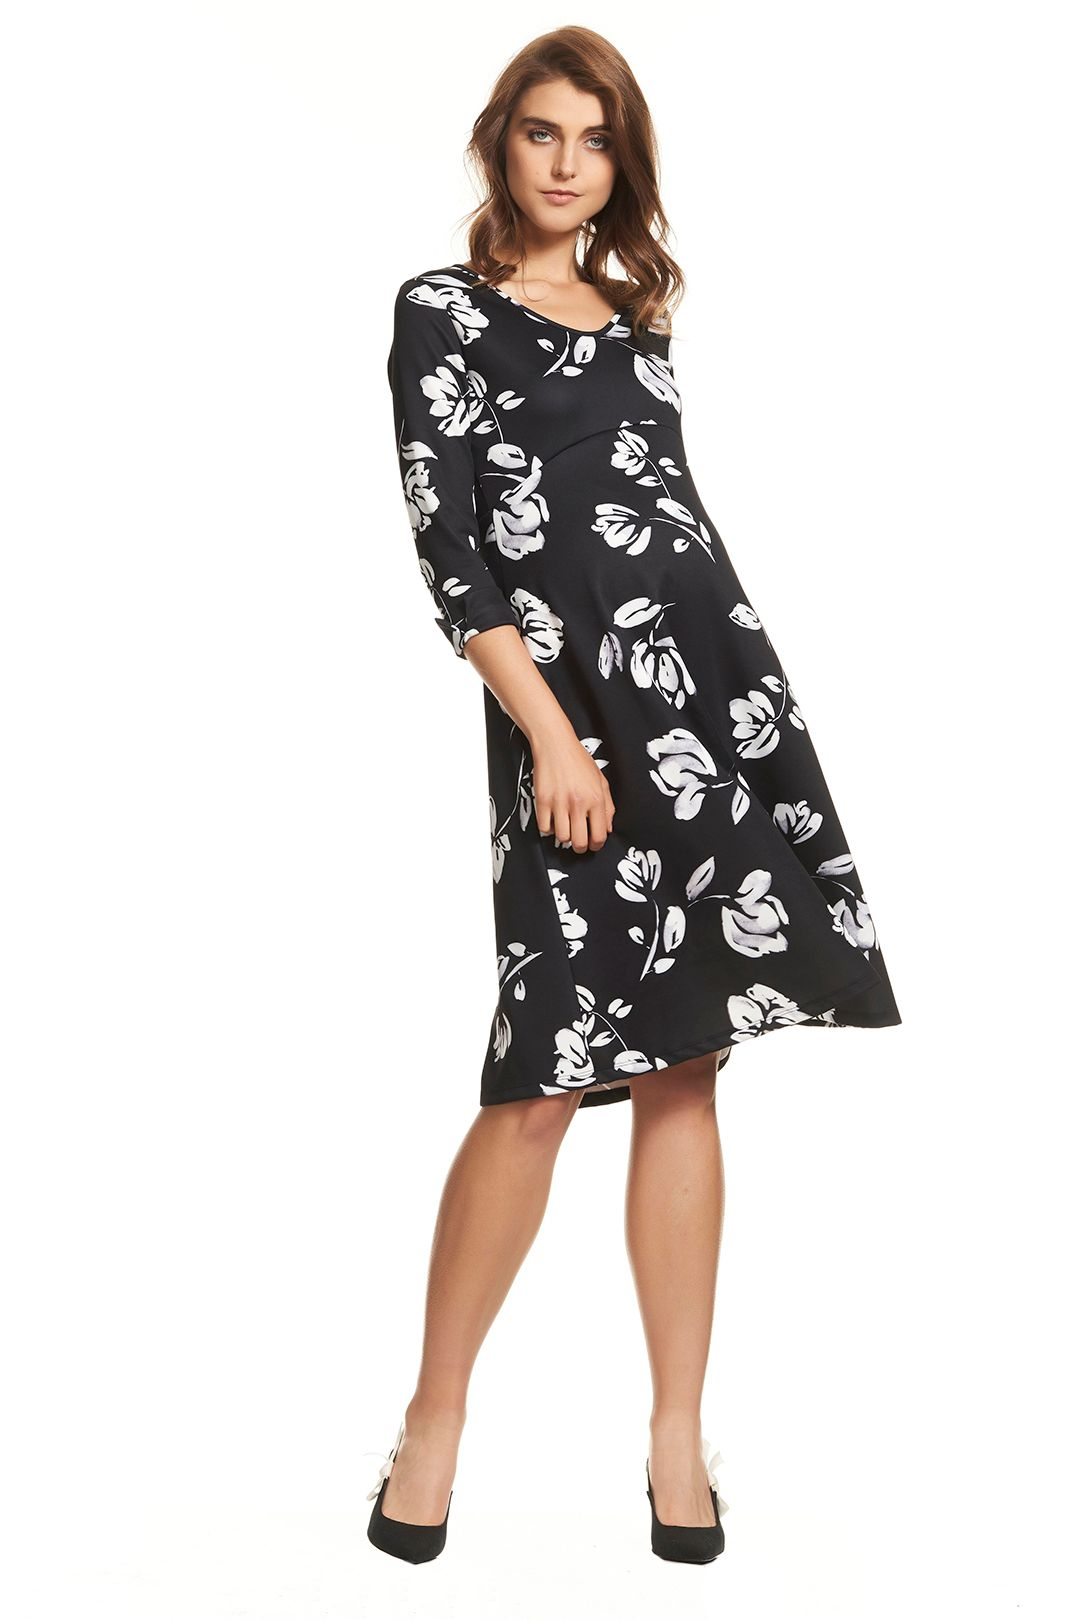 Soon Maternity-Meghan-Swing-Dress-Black-Floral-Front